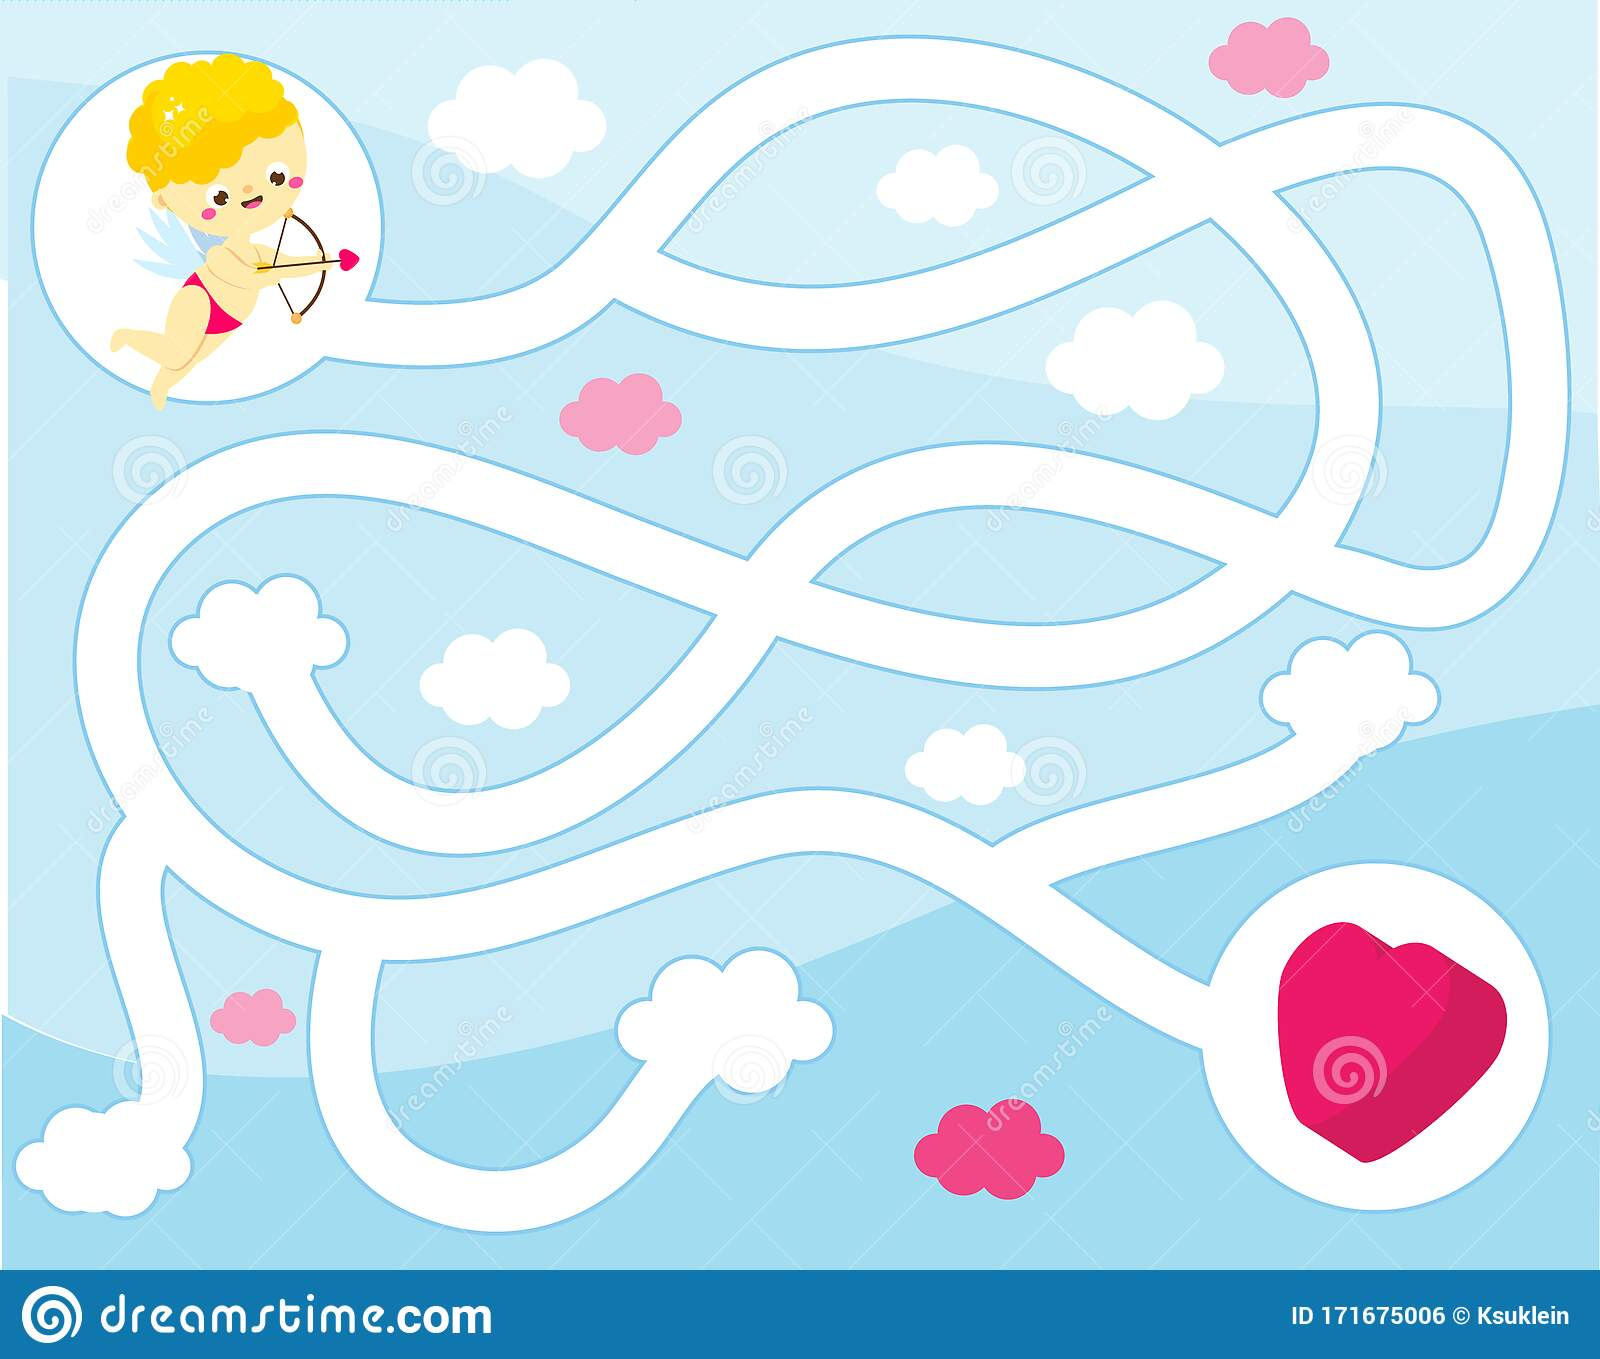 Maze Puzzle Help Cupid Find Heart Activity For And Kids